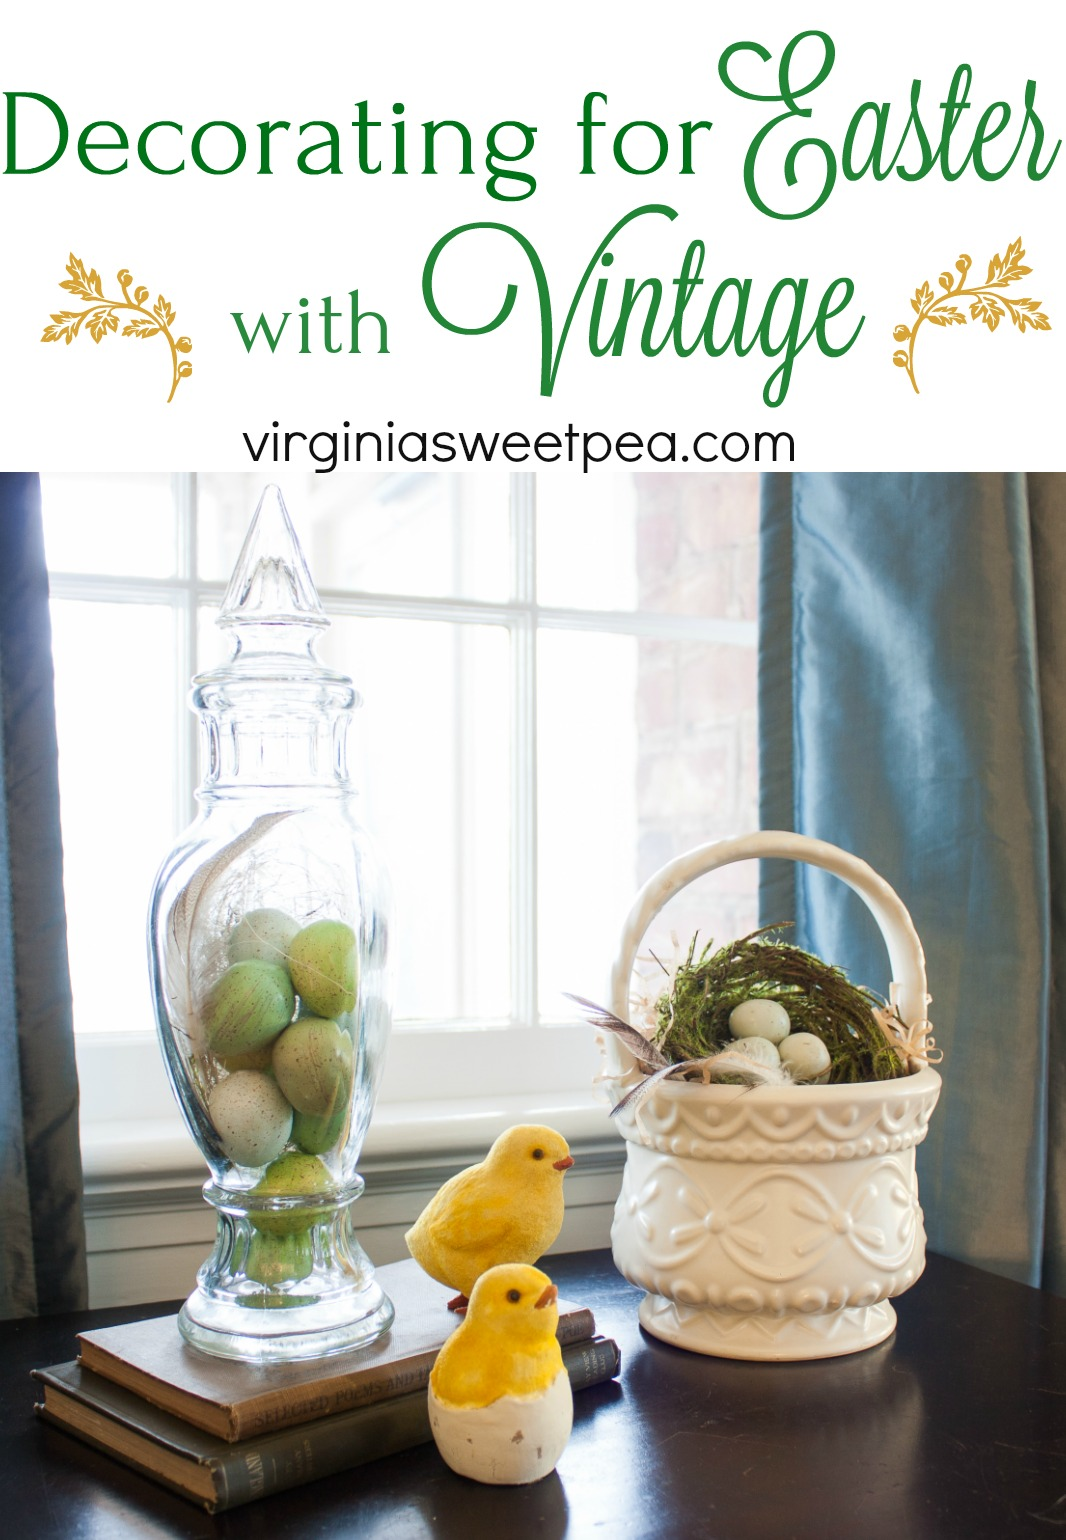 Decorating for Easter with Vintage - See a home decorated for Easter with traditional Easter decor combined with vintage pieces. Get ideas for Easter decor from this post plus from 30+ other home decor bloggers. #easter #easterdecor #easterdecorations #vintage #vintagedecort